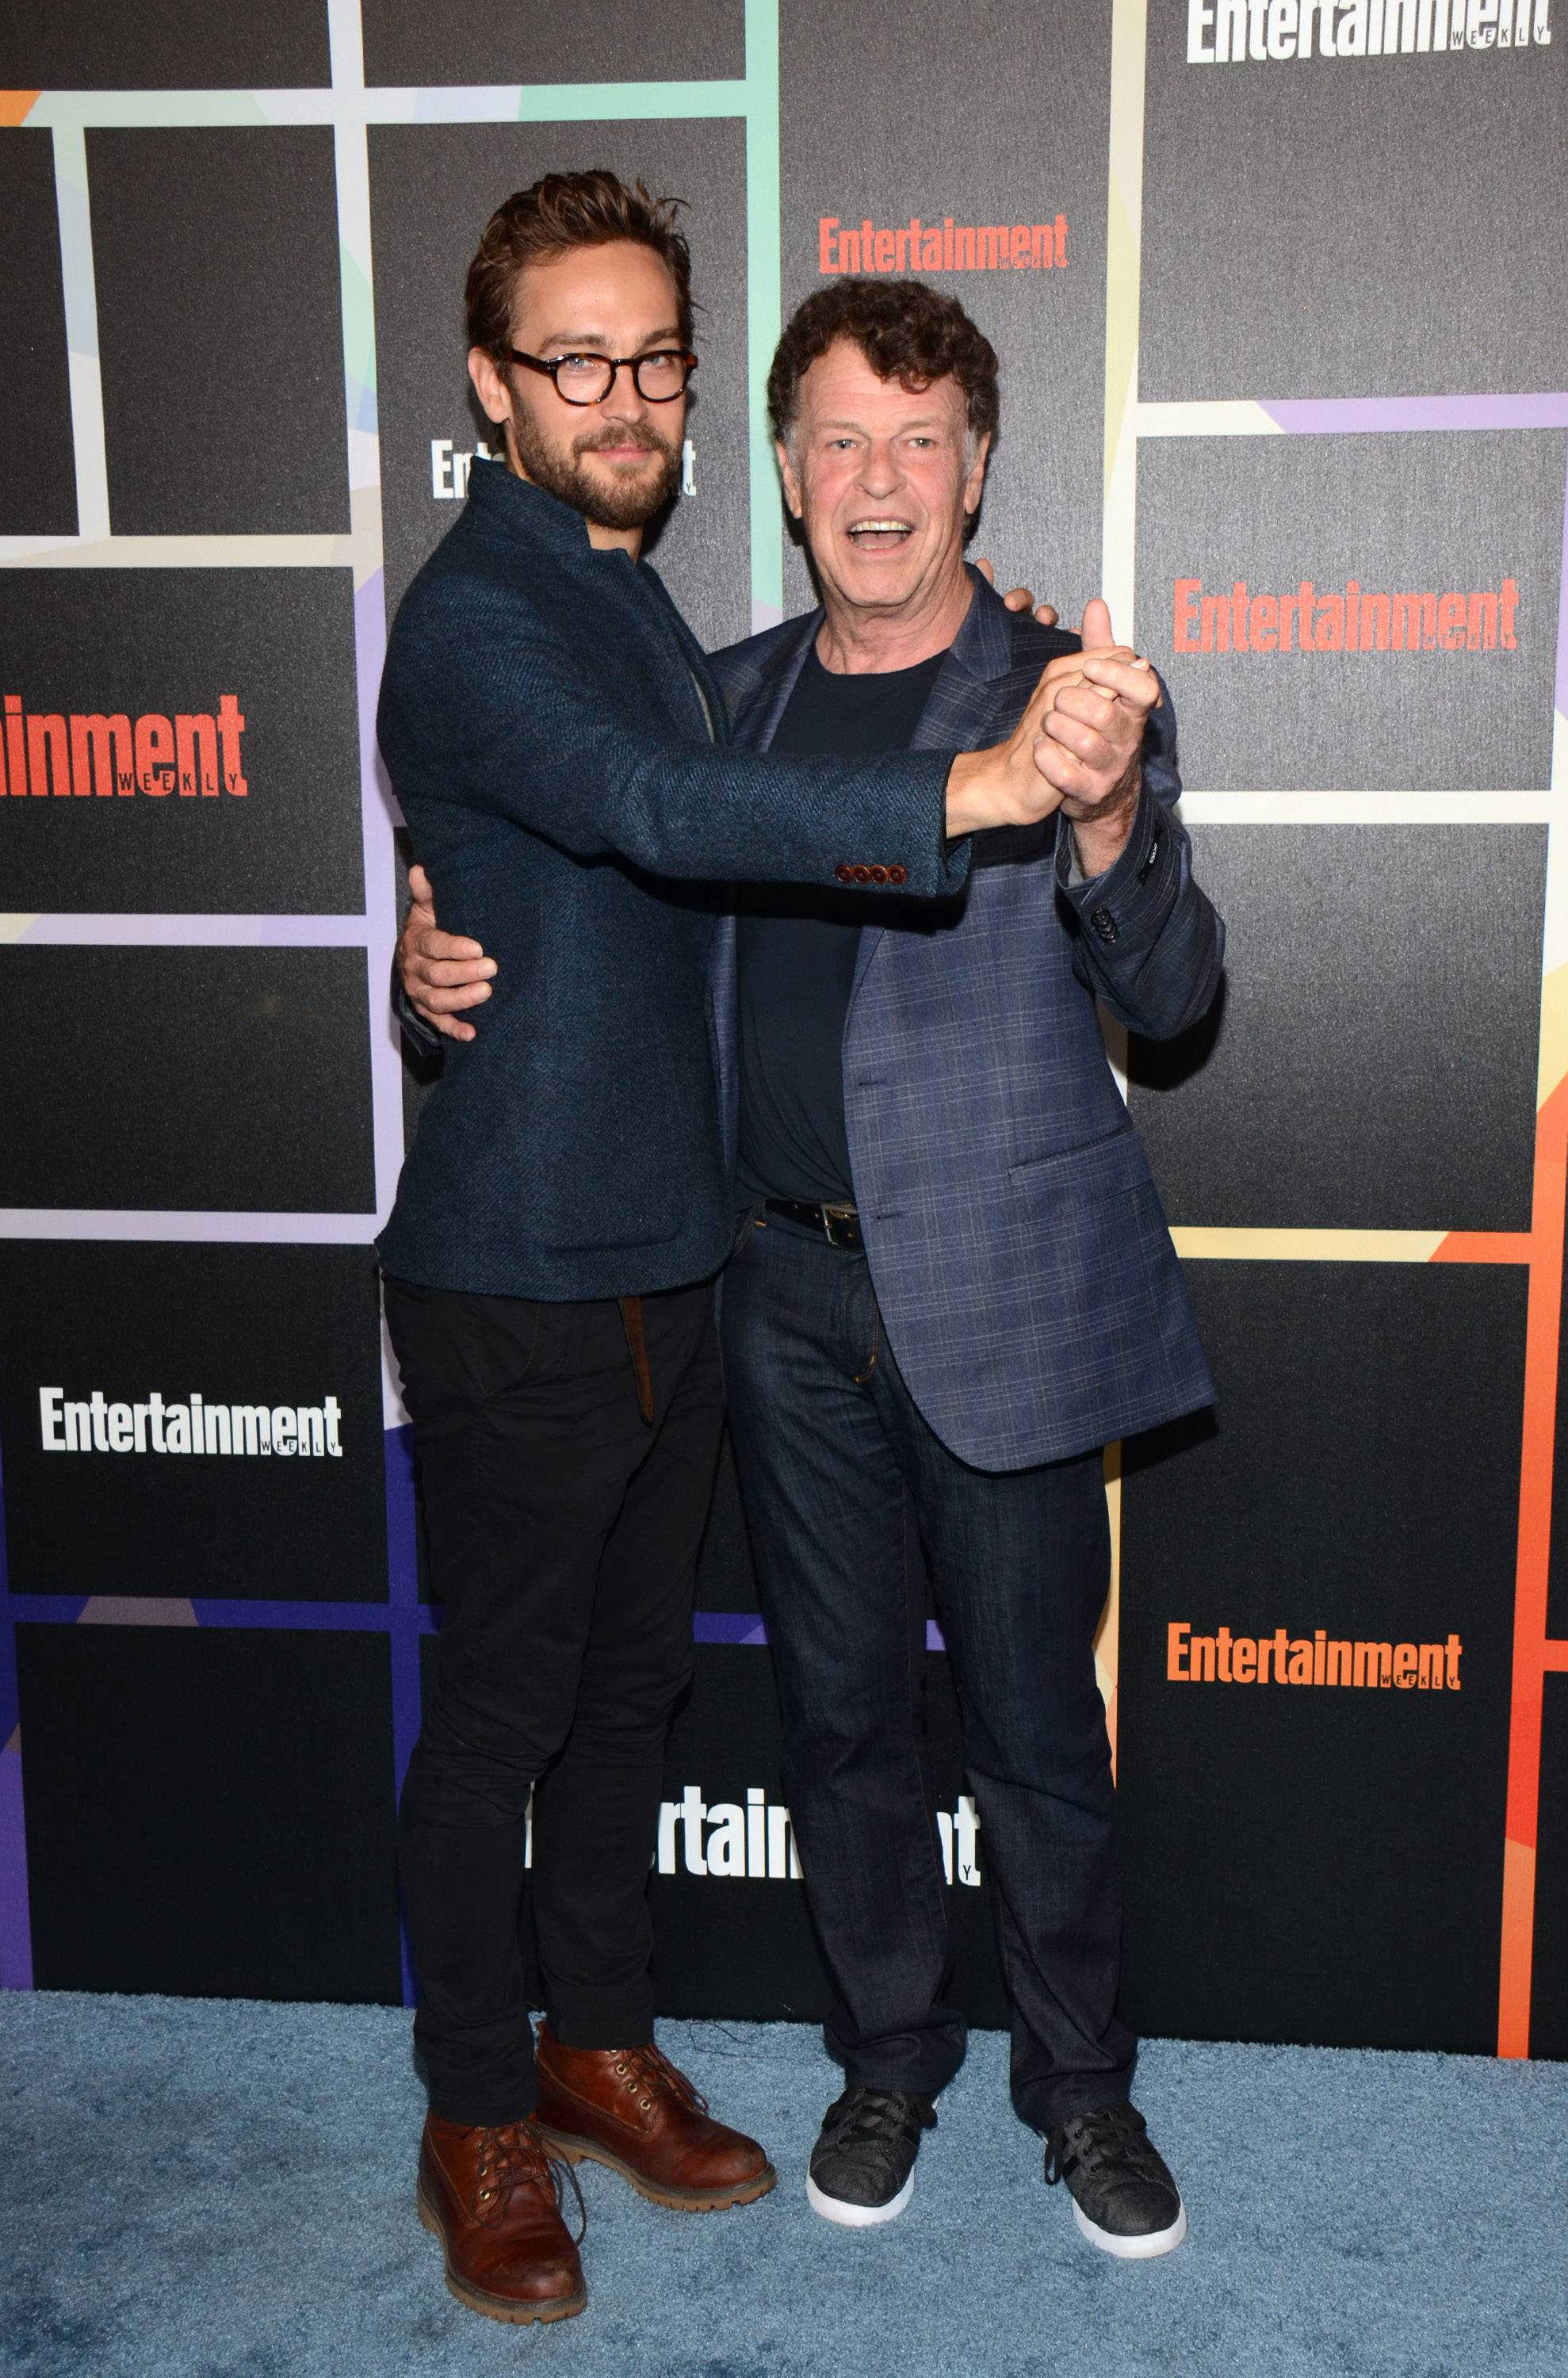 From left, Tom Mison and John Noble arrive at Entertainment Weekly's Annual Comic-Con Closing Night Celebration at the Hard Rock Hotel on Saturday.